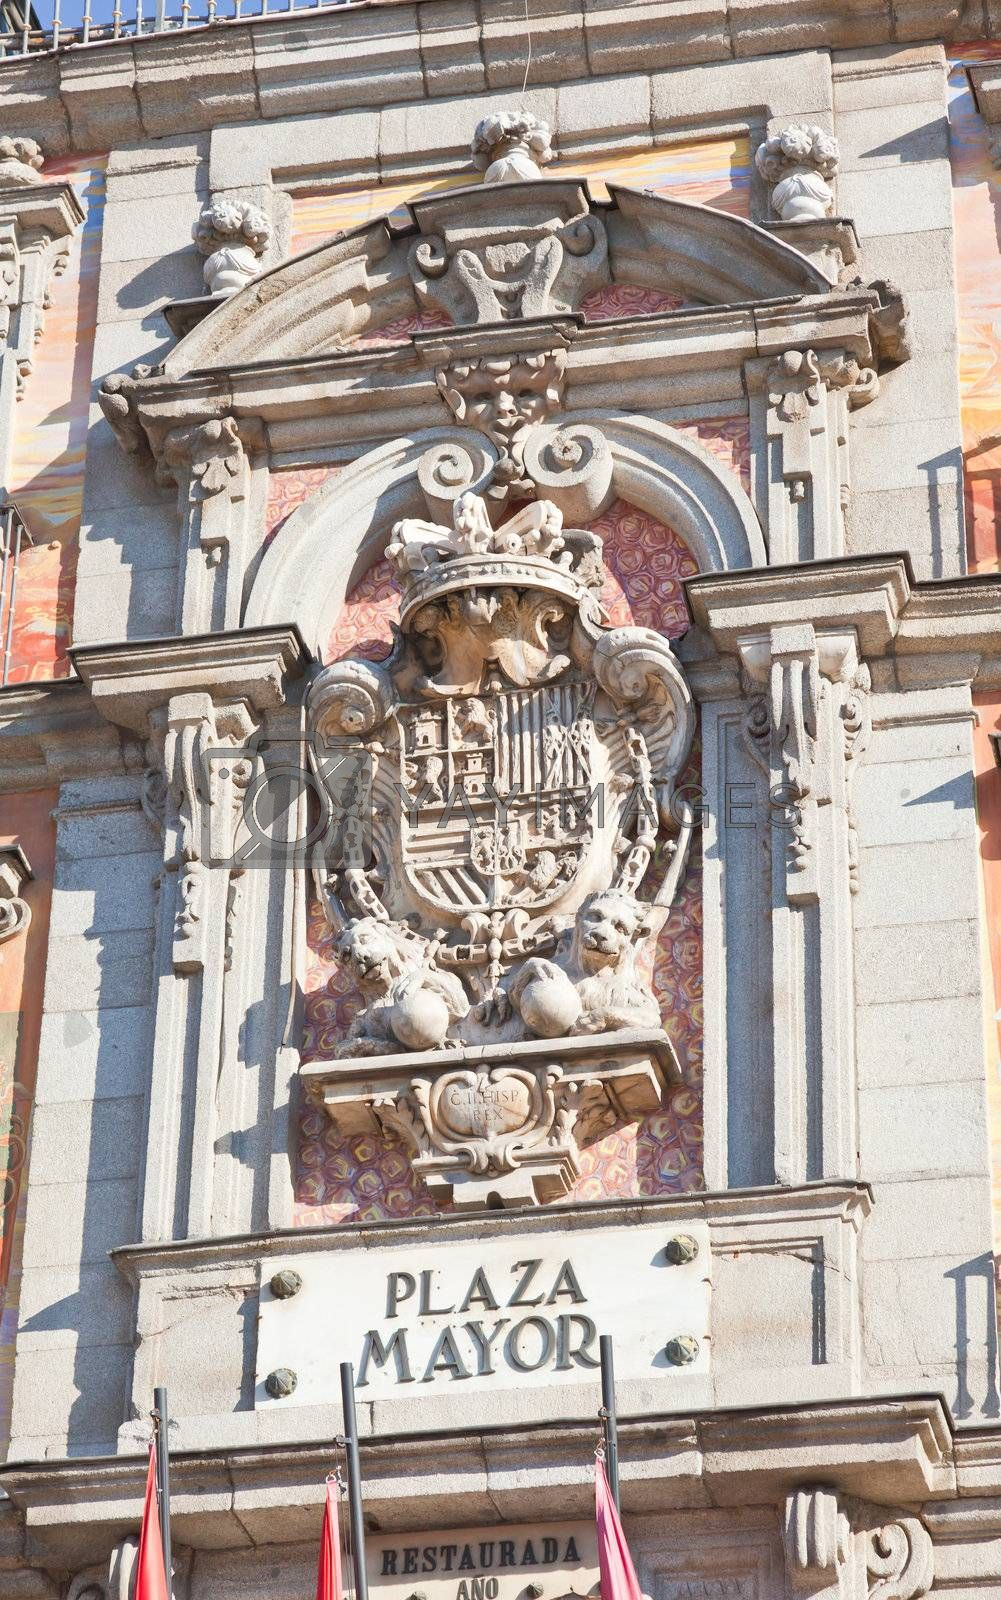 Royalty free image of The Plaza Mayor (Main Square) in Madrid by gary718